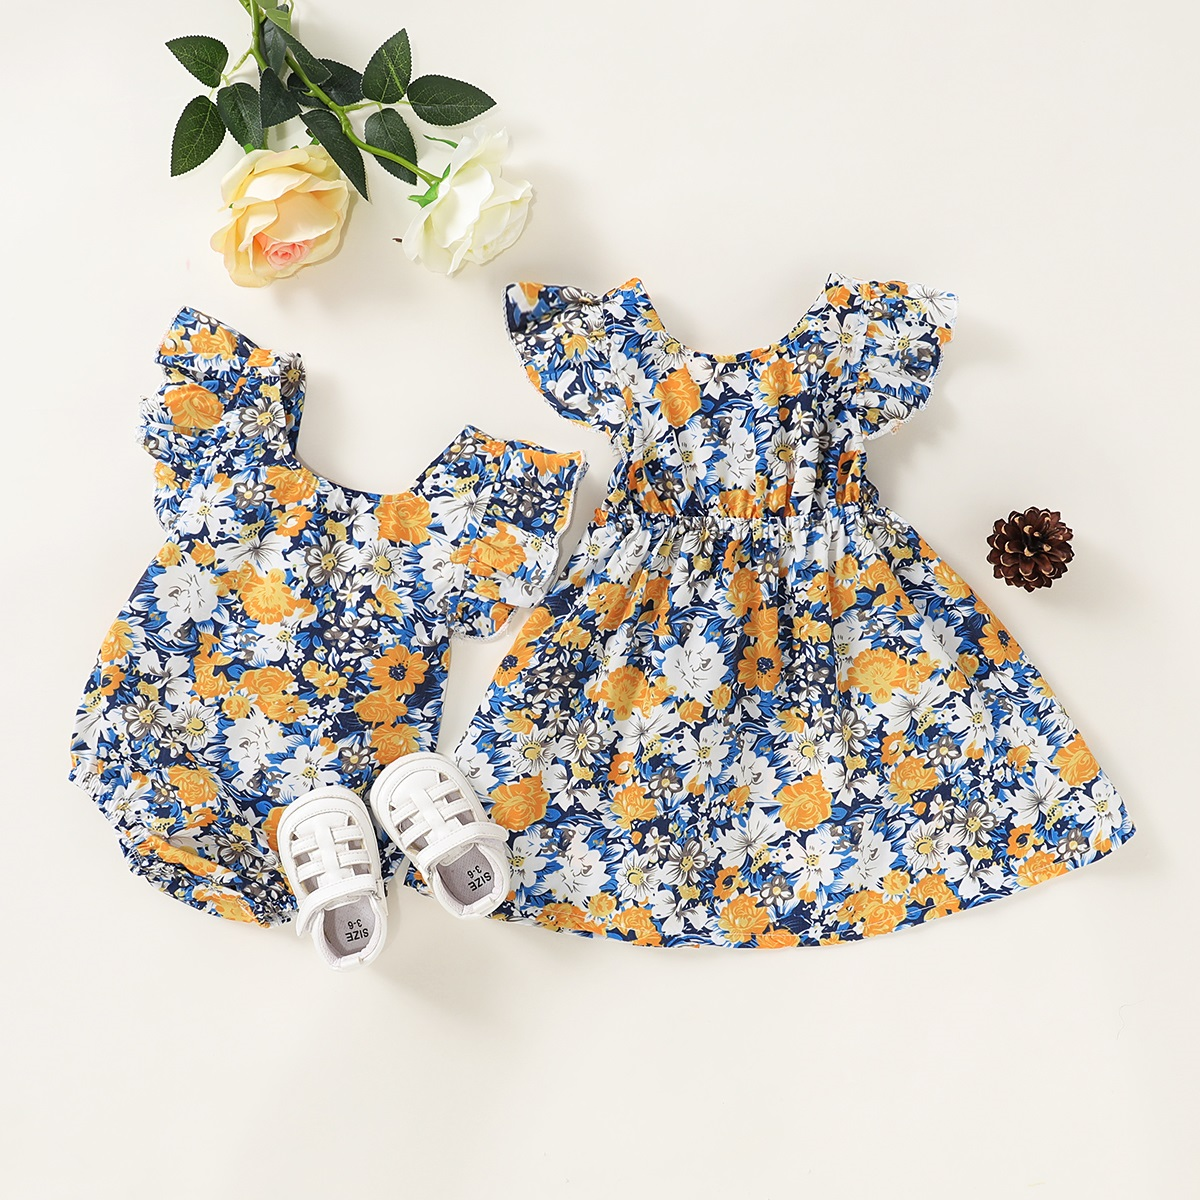 Baby Summer Clothing Newborn Baby Girls Sister Matching Clothes Romper Dresses Jumpsuit Colorful Floral Outfit Set